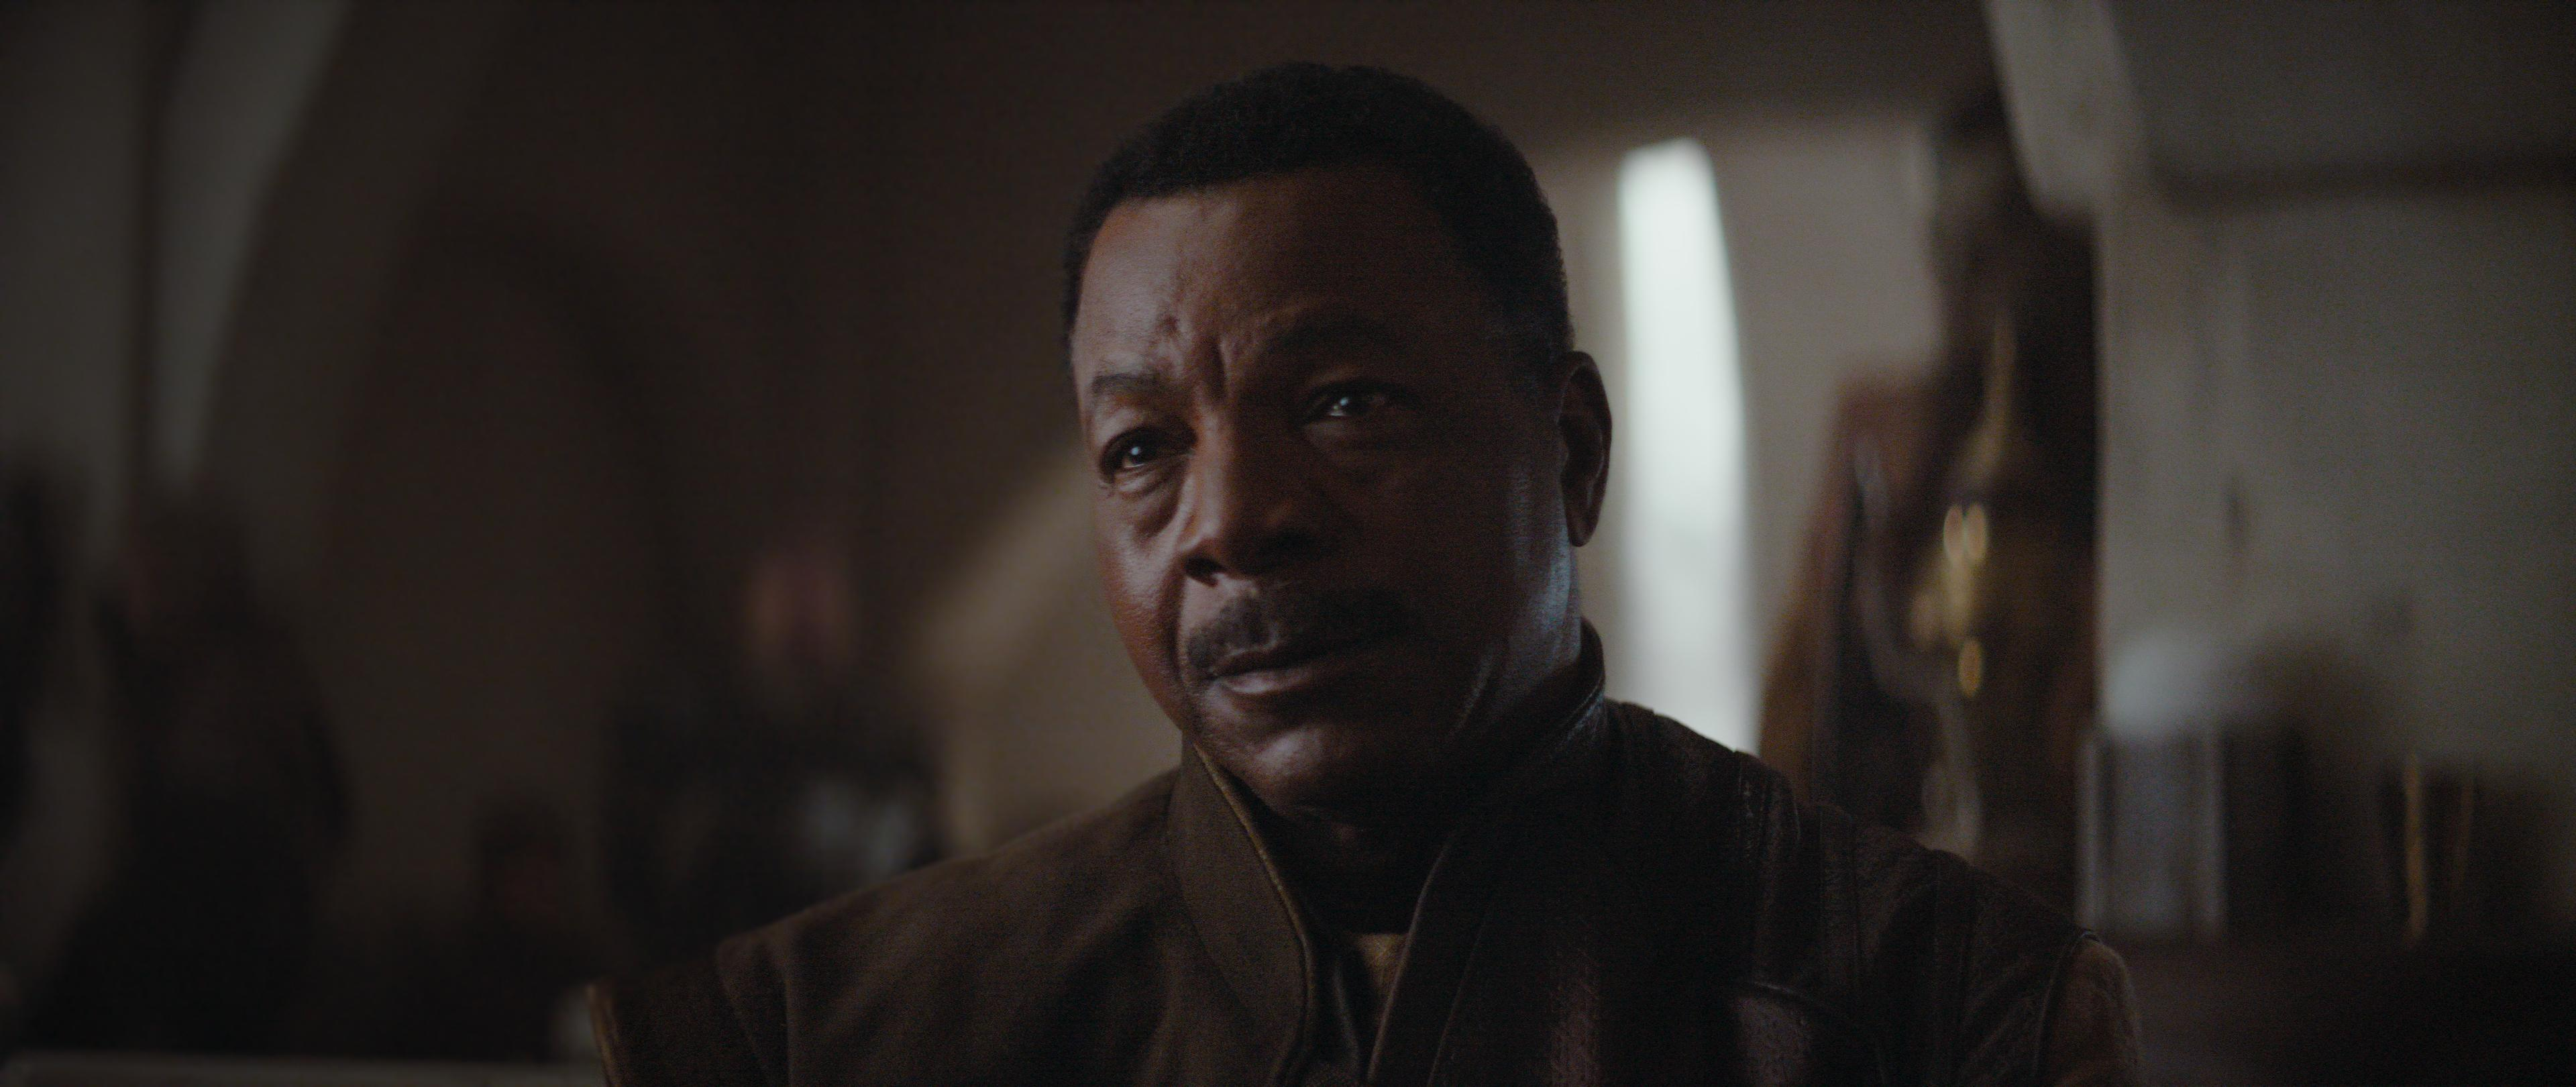 Carl Weathers plays Bounty Hunter Guild leader, Greef Carga in 'The Mandalorian' (Photo: Lucasfilm Ltd.)